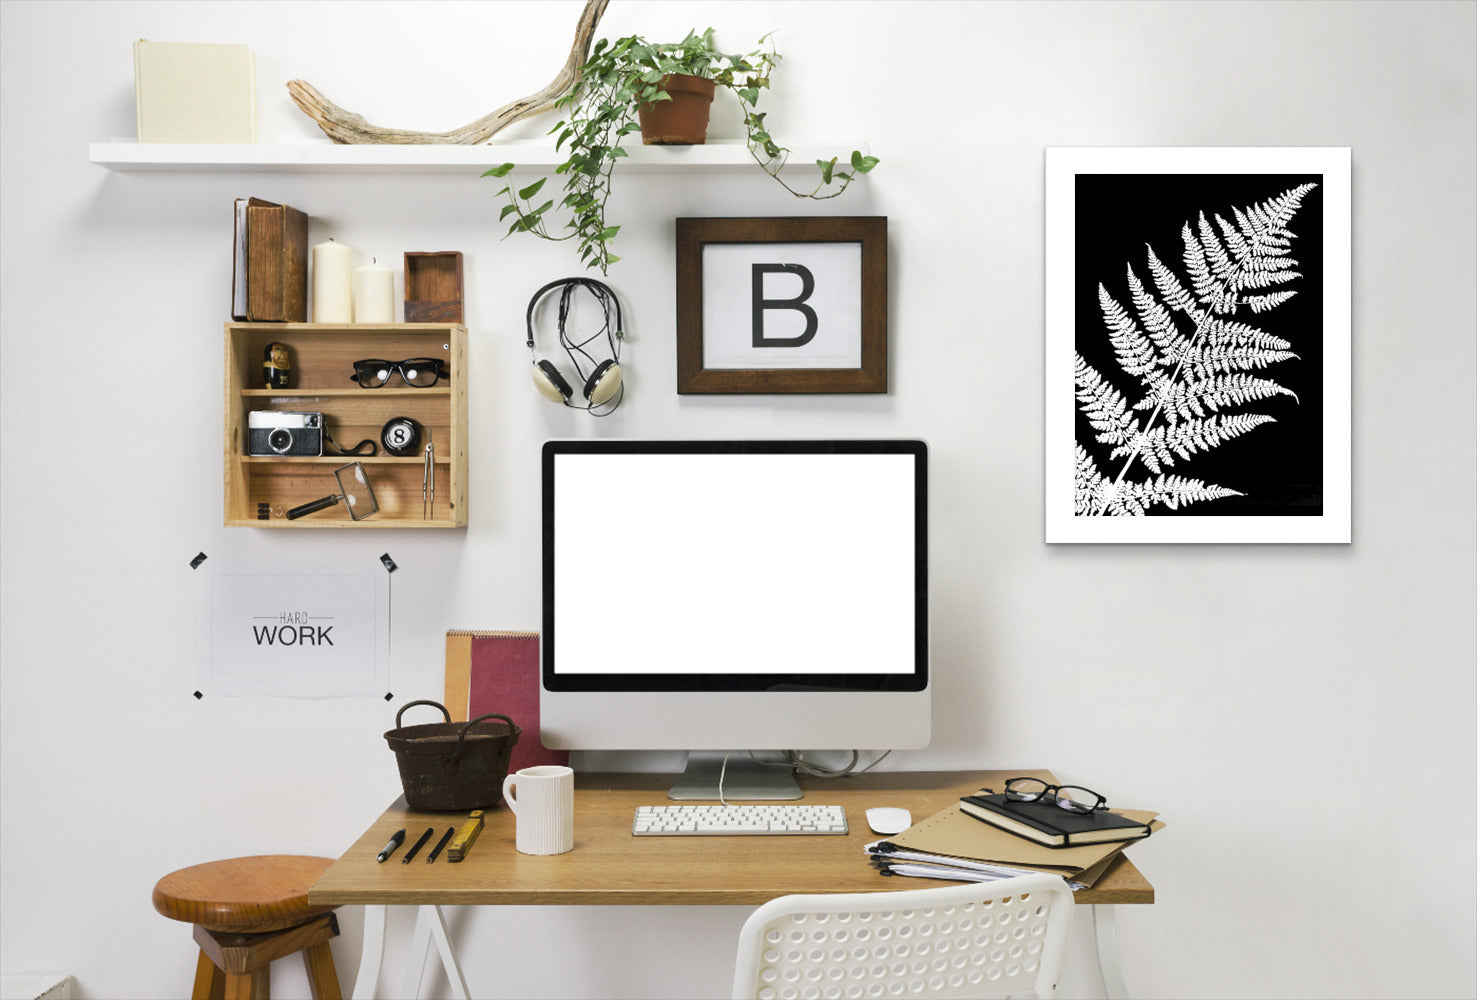 White Fern Iii By Chaos & Wonder Design - White Framed Print - Wall Art - Americanflat